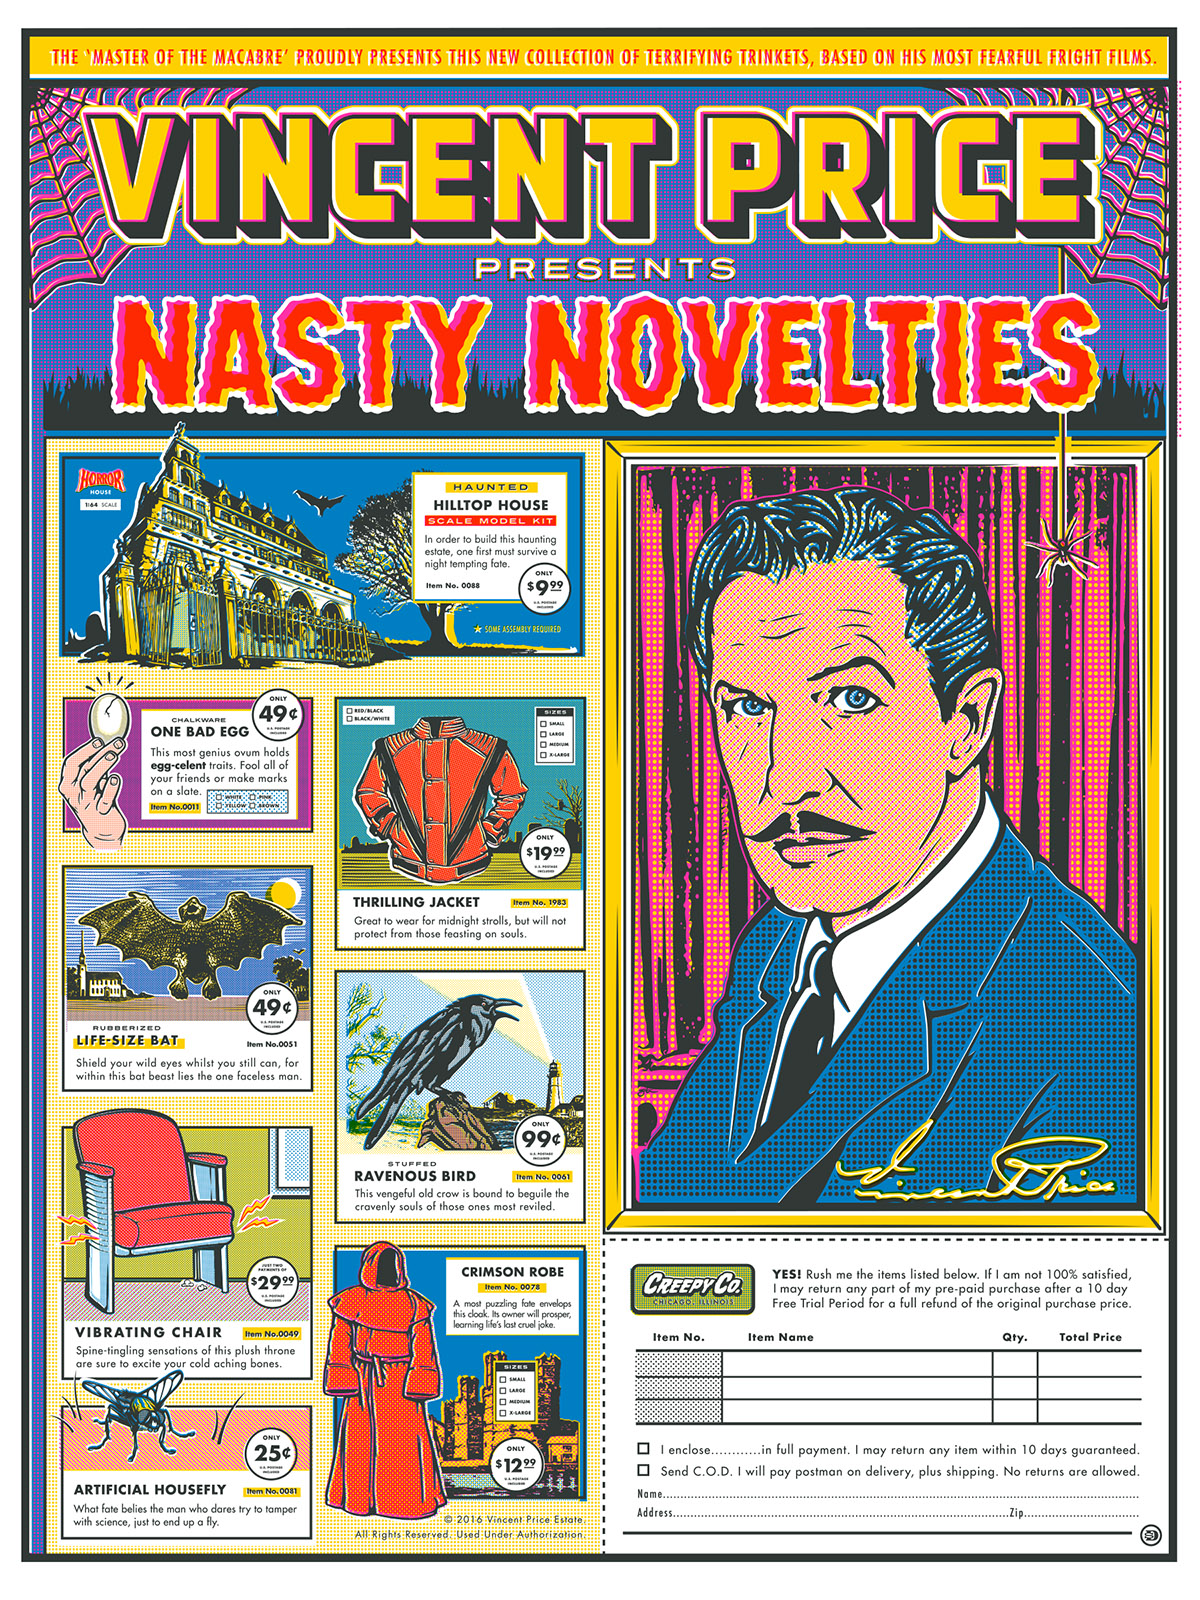 Vincent Price Nasty Novelties